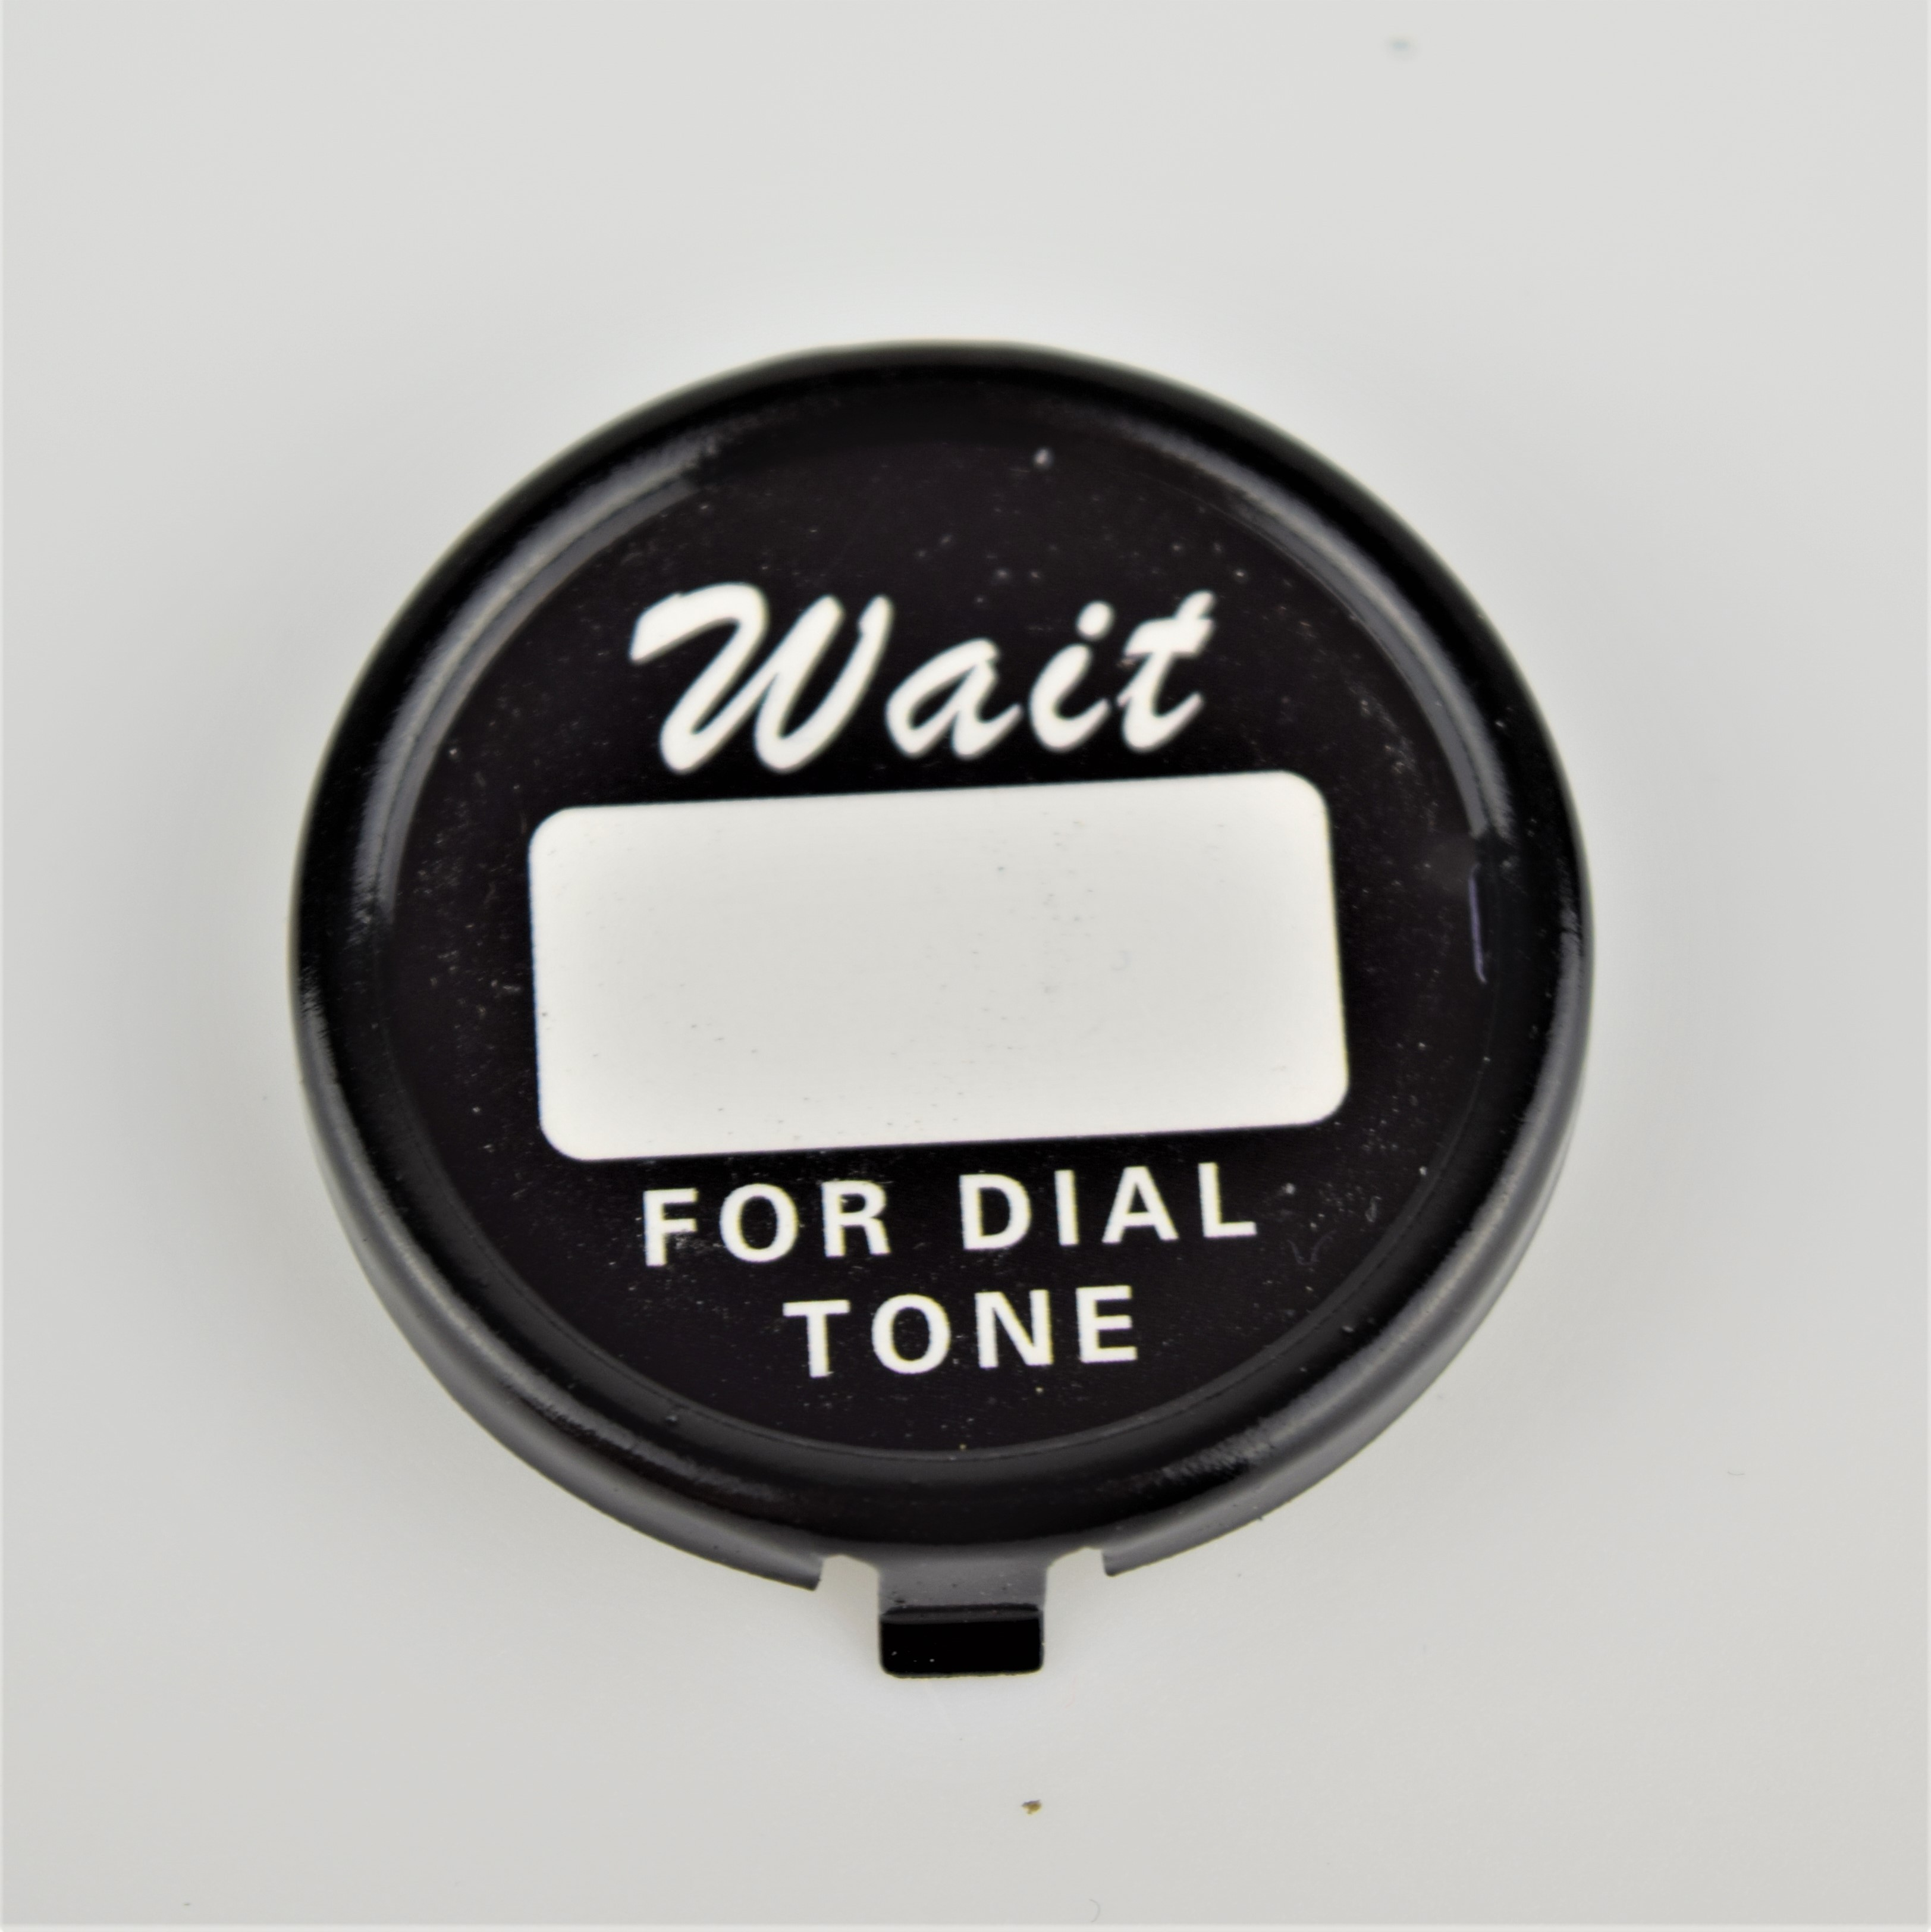 Western Electric Dial Card Kit - Black